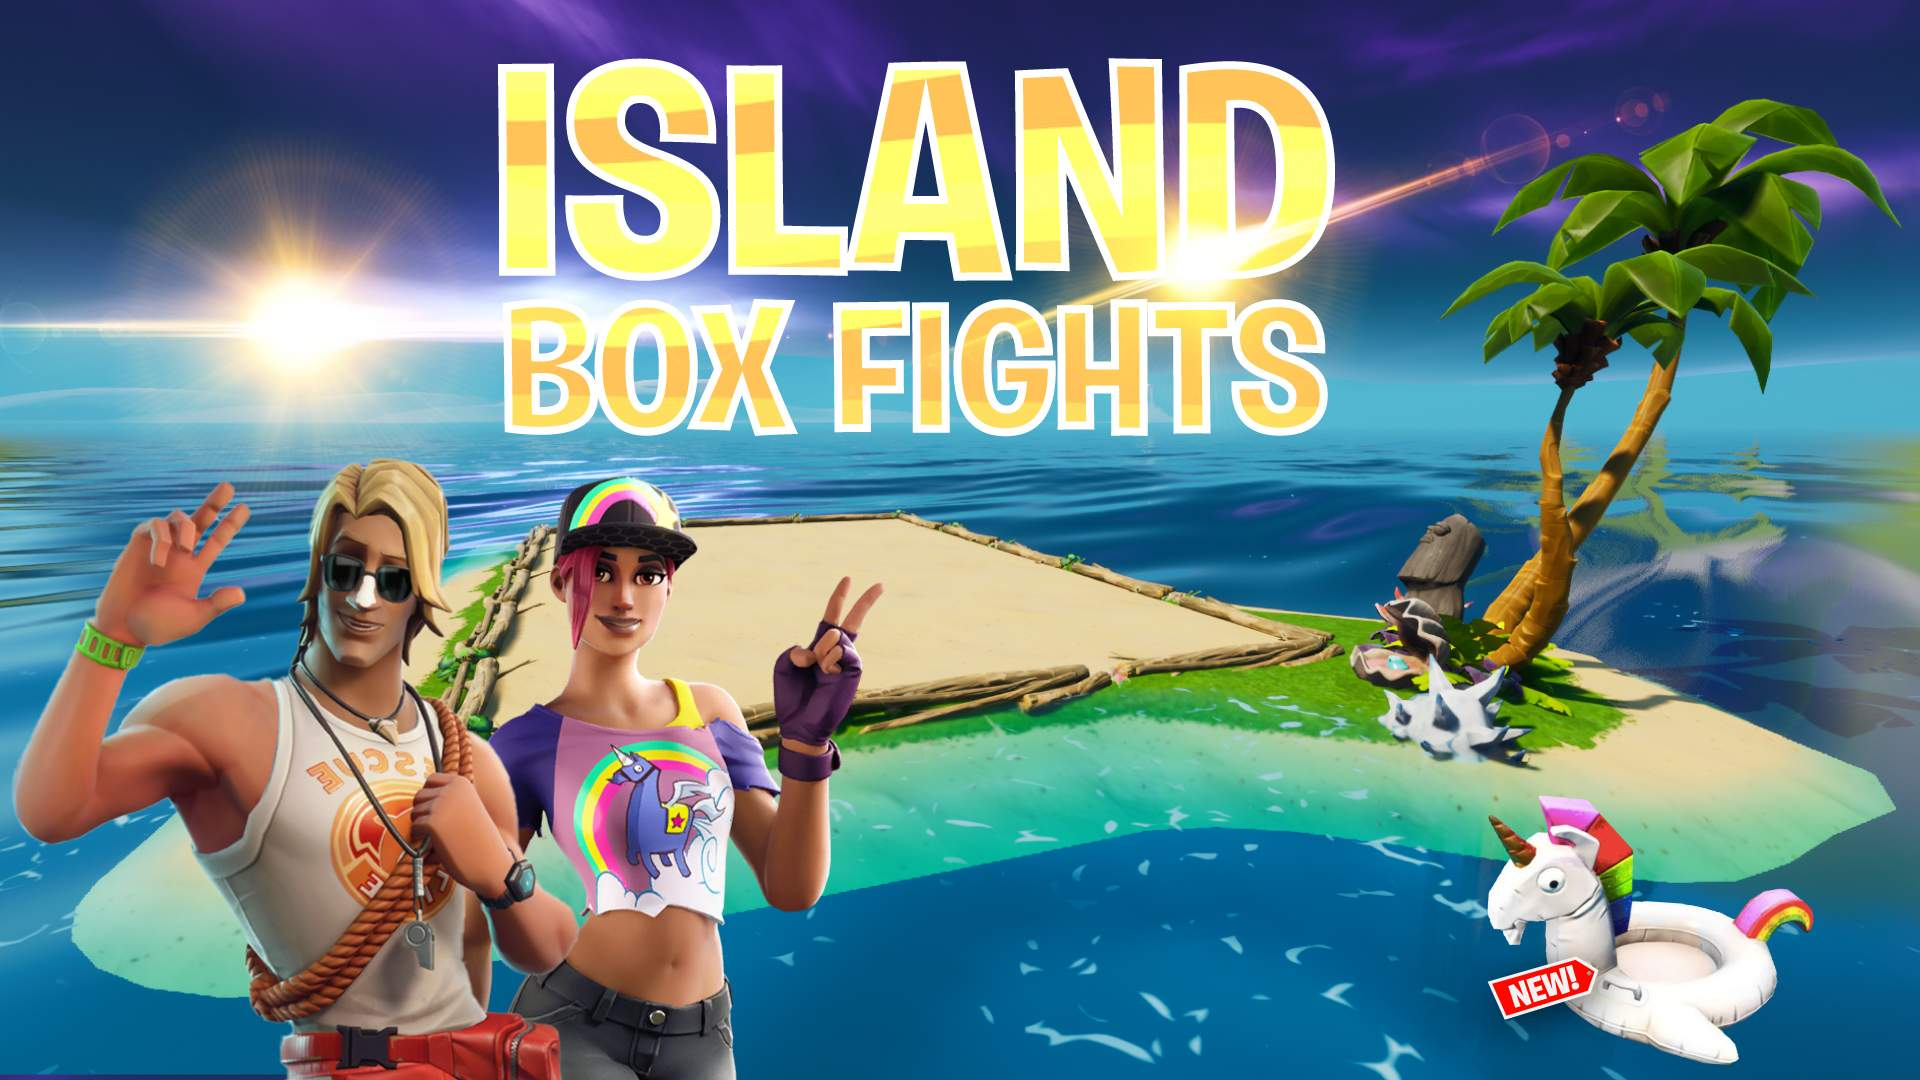 ISLAND BOX FIGHTS - WAGER MATCHES